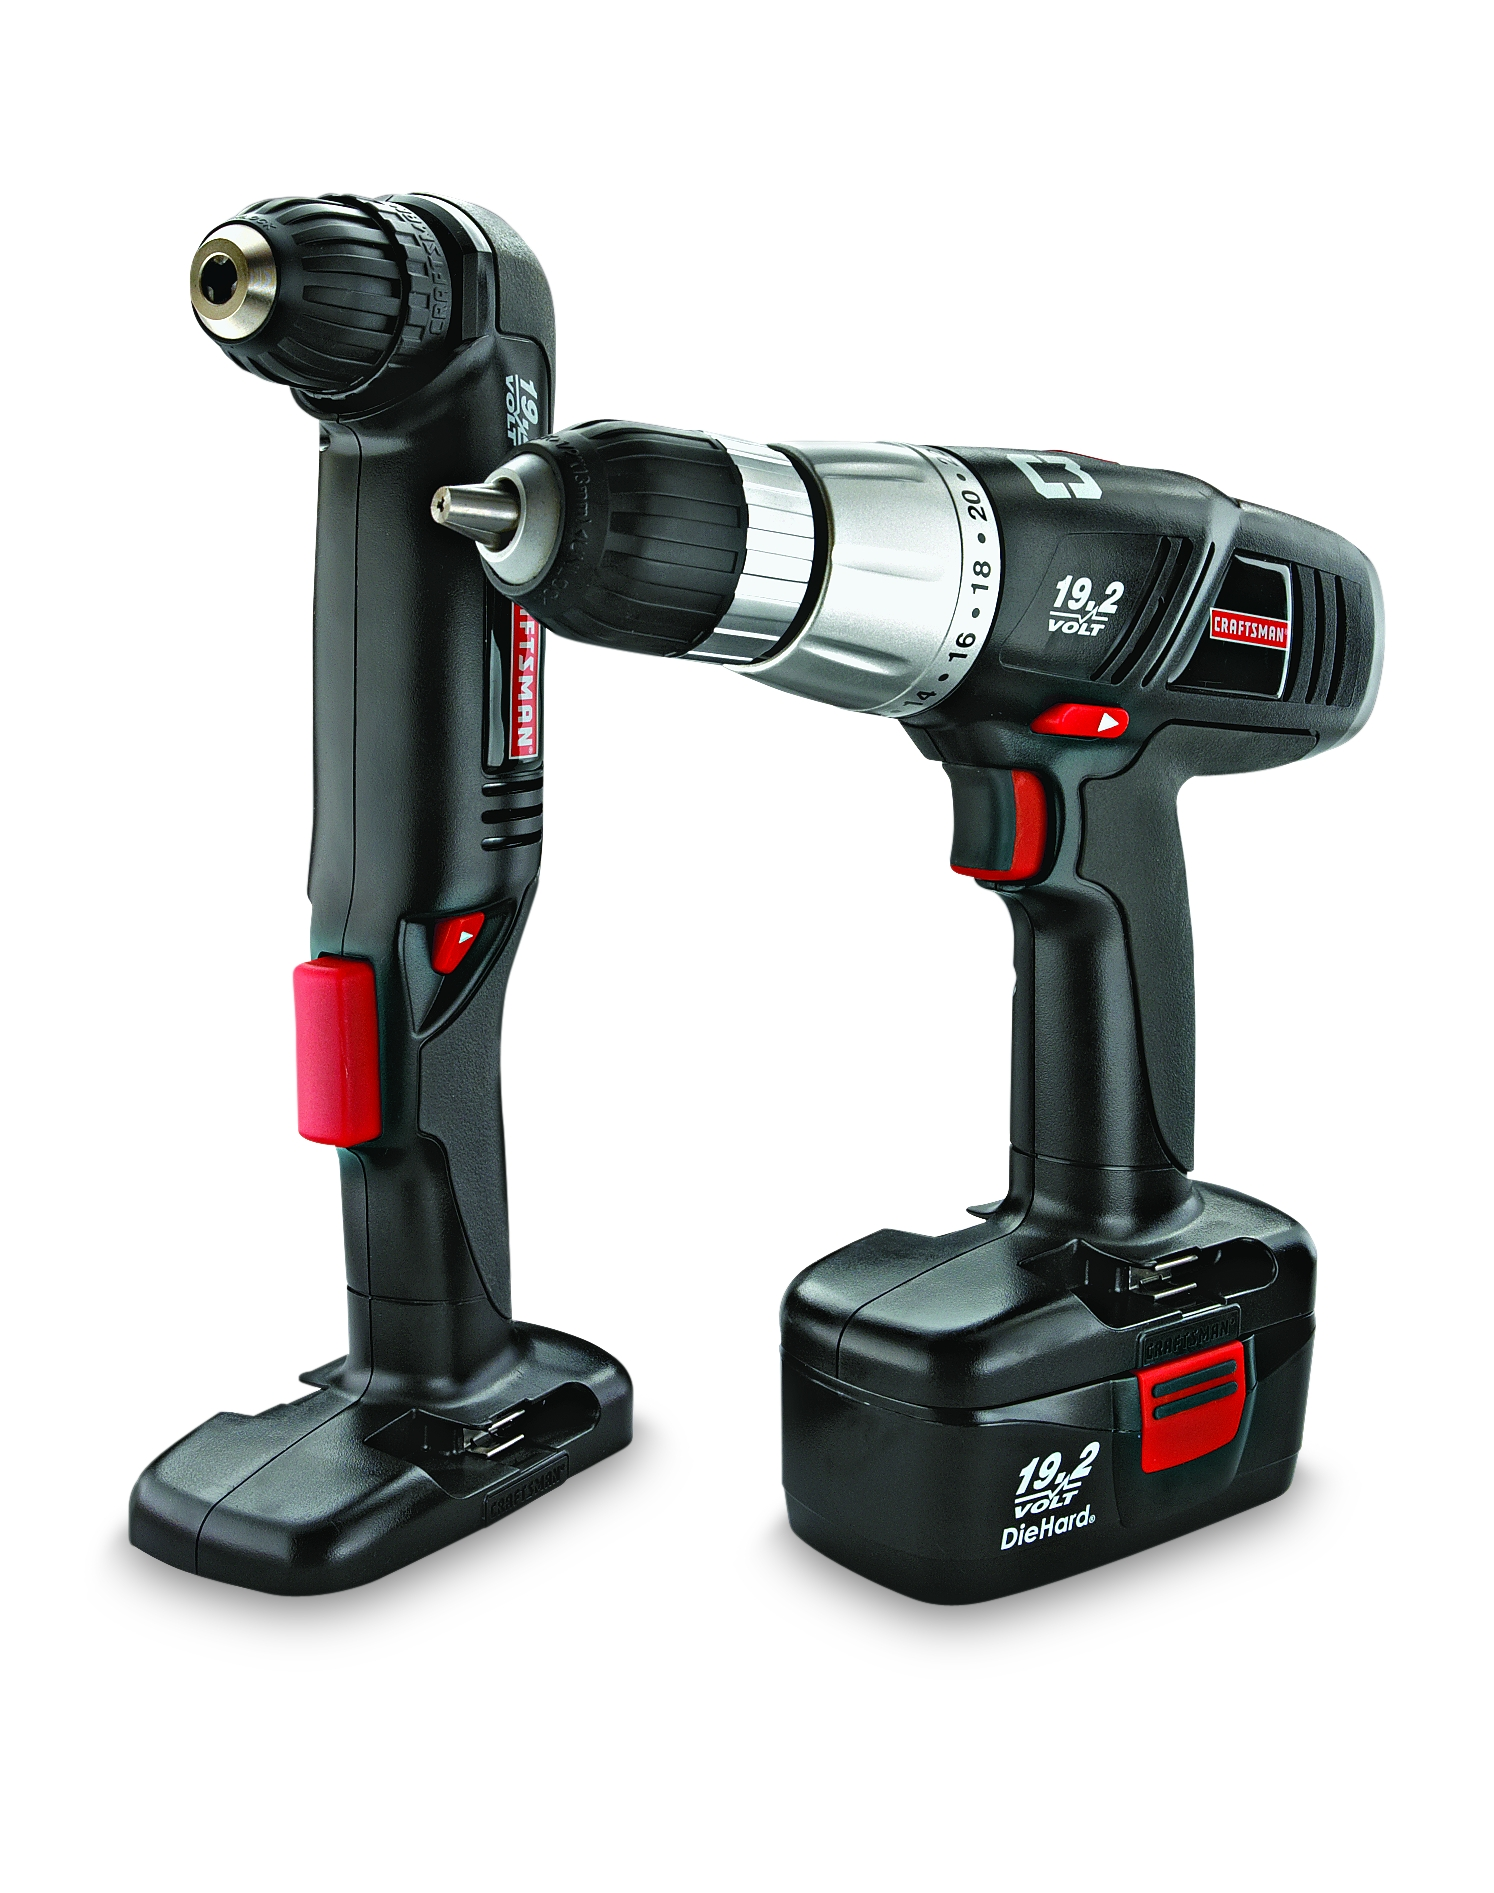 Craftsman C3 19.2-Volt  Cordless Combo Kit with RA Drill